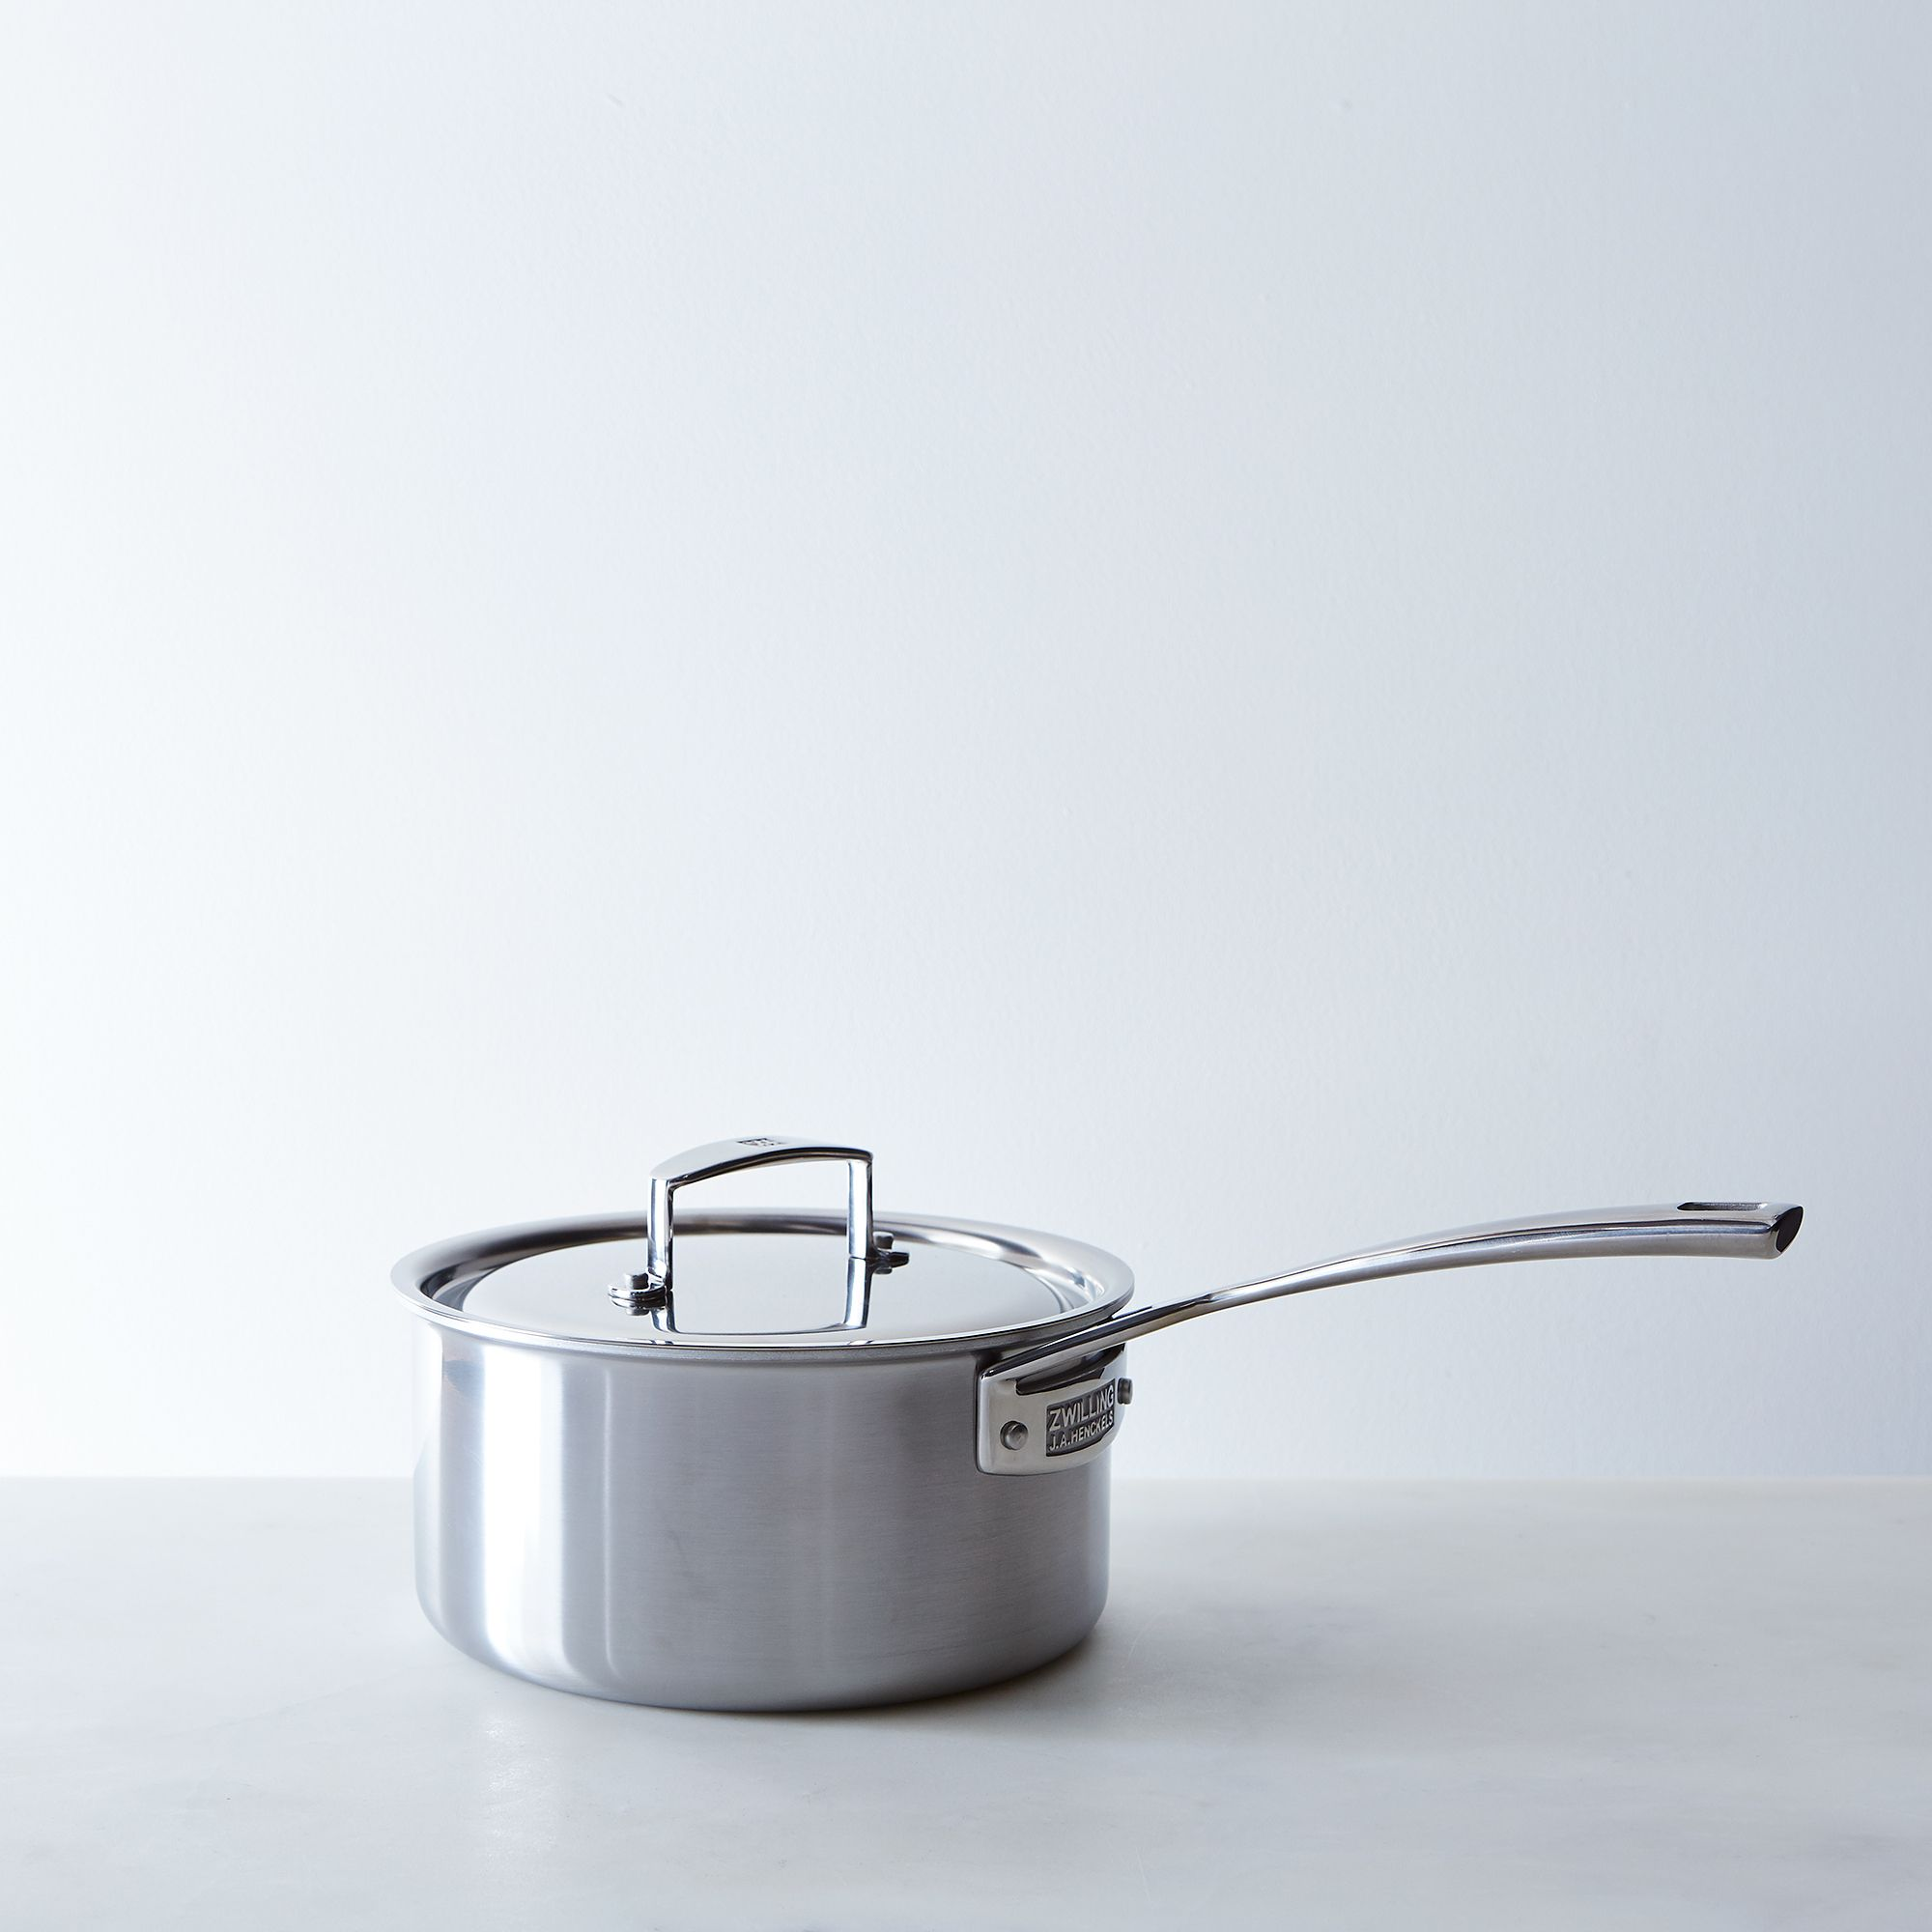 Zwilling Aurora 5-ply Stainless Steel Saucepan With Lid 3 Qt